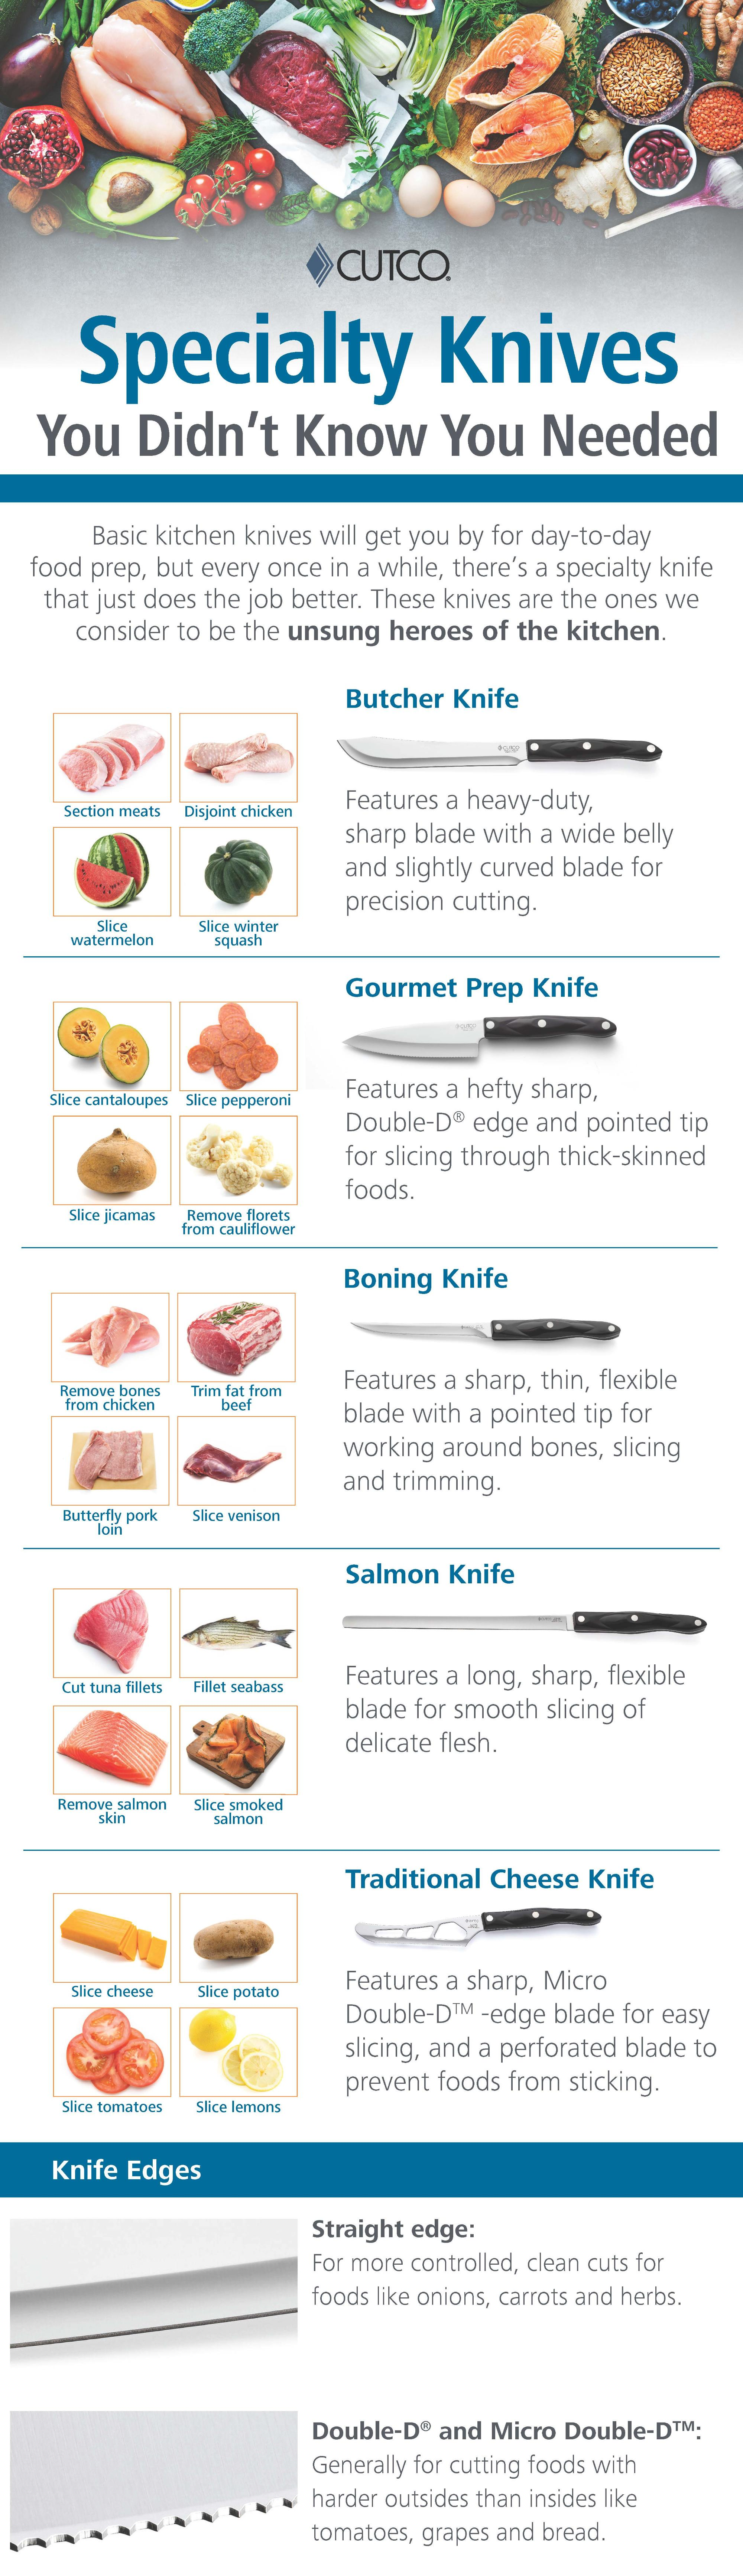 specialty knives infographic